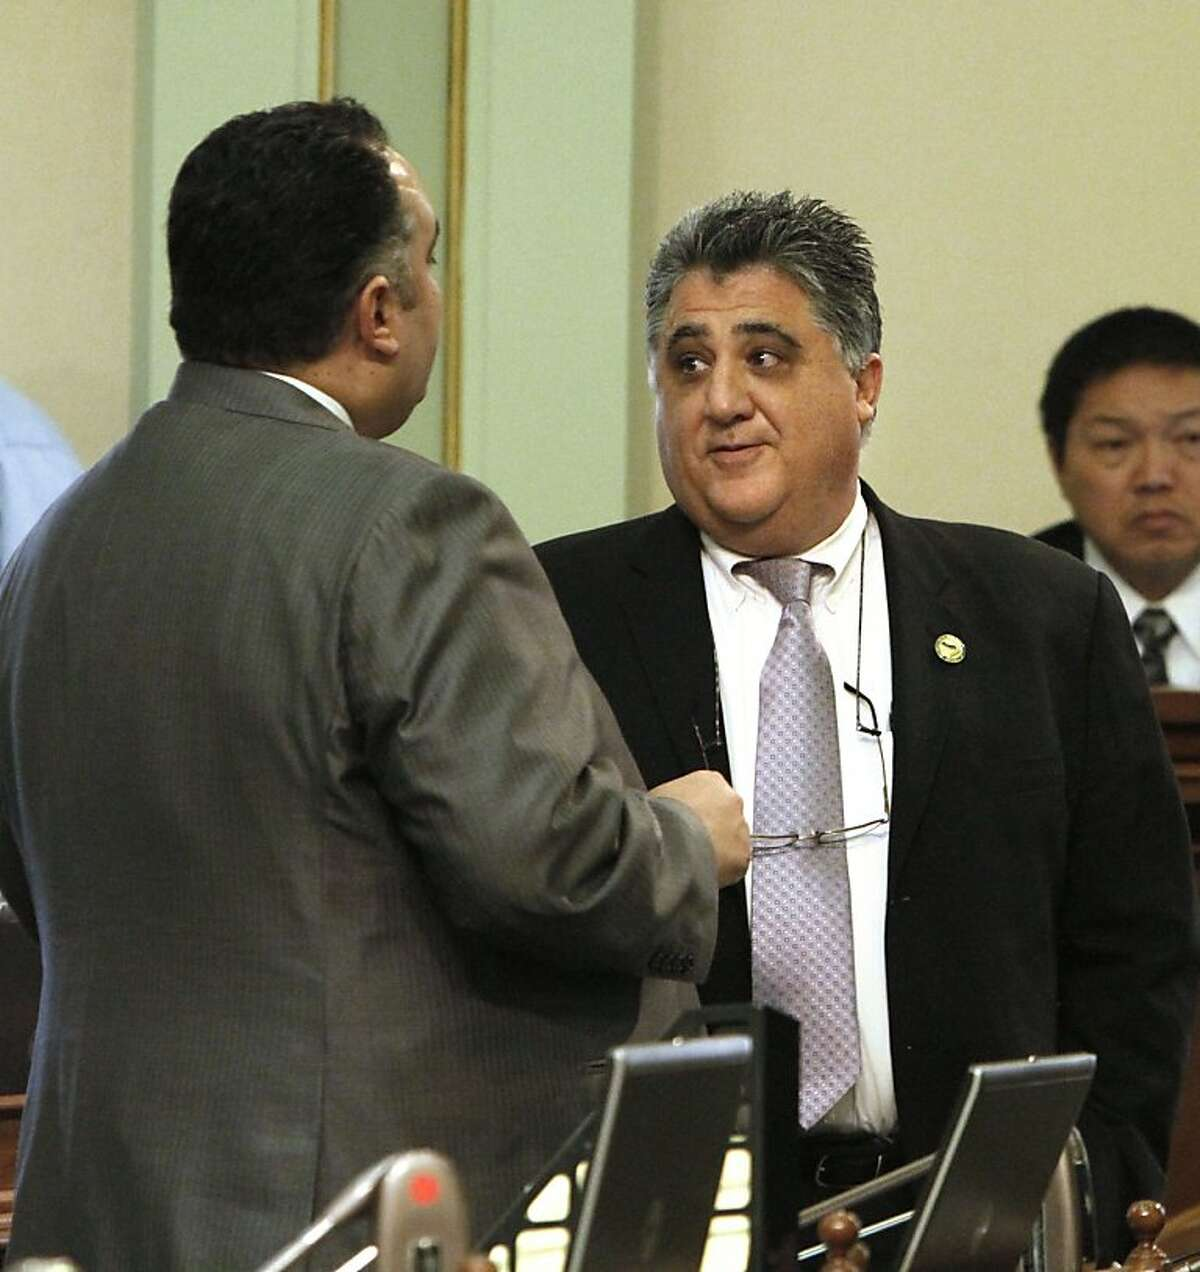 In this photo taken March 16, 2011, Assemblyman Anthony Portantino, D- La Canada Flintridge, right, talks with Assembly Speaker John Perez, D-Los Angeles, during a debate over the state budget at the Capitol in Sacramento. Portantino said his bill to push back school start times at middle and high schools in the state is dead for the year after intense lobbying against the measure in recent days.